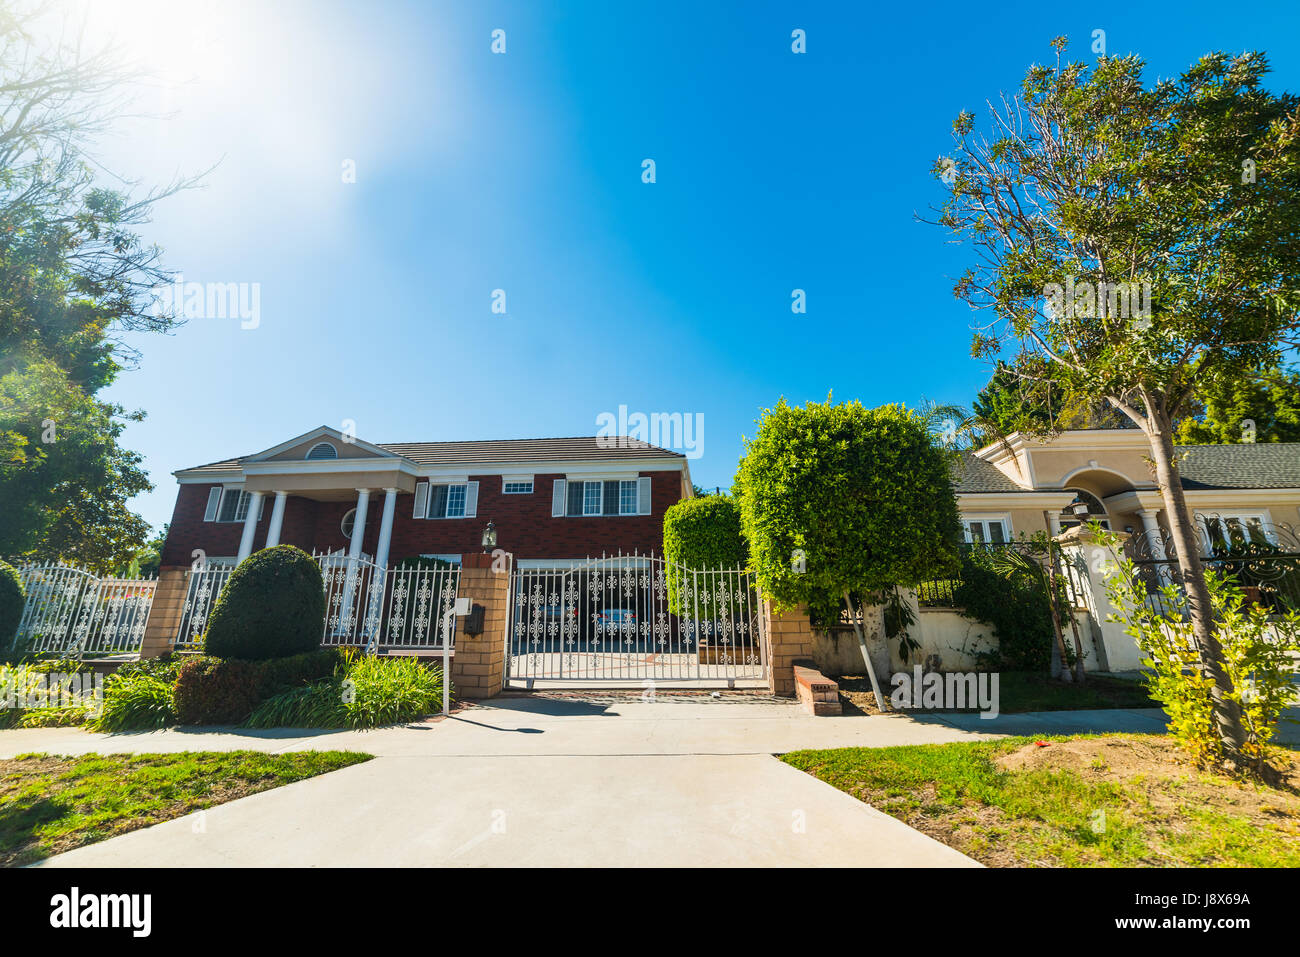 Beautiful houses in southern California - Stock Image